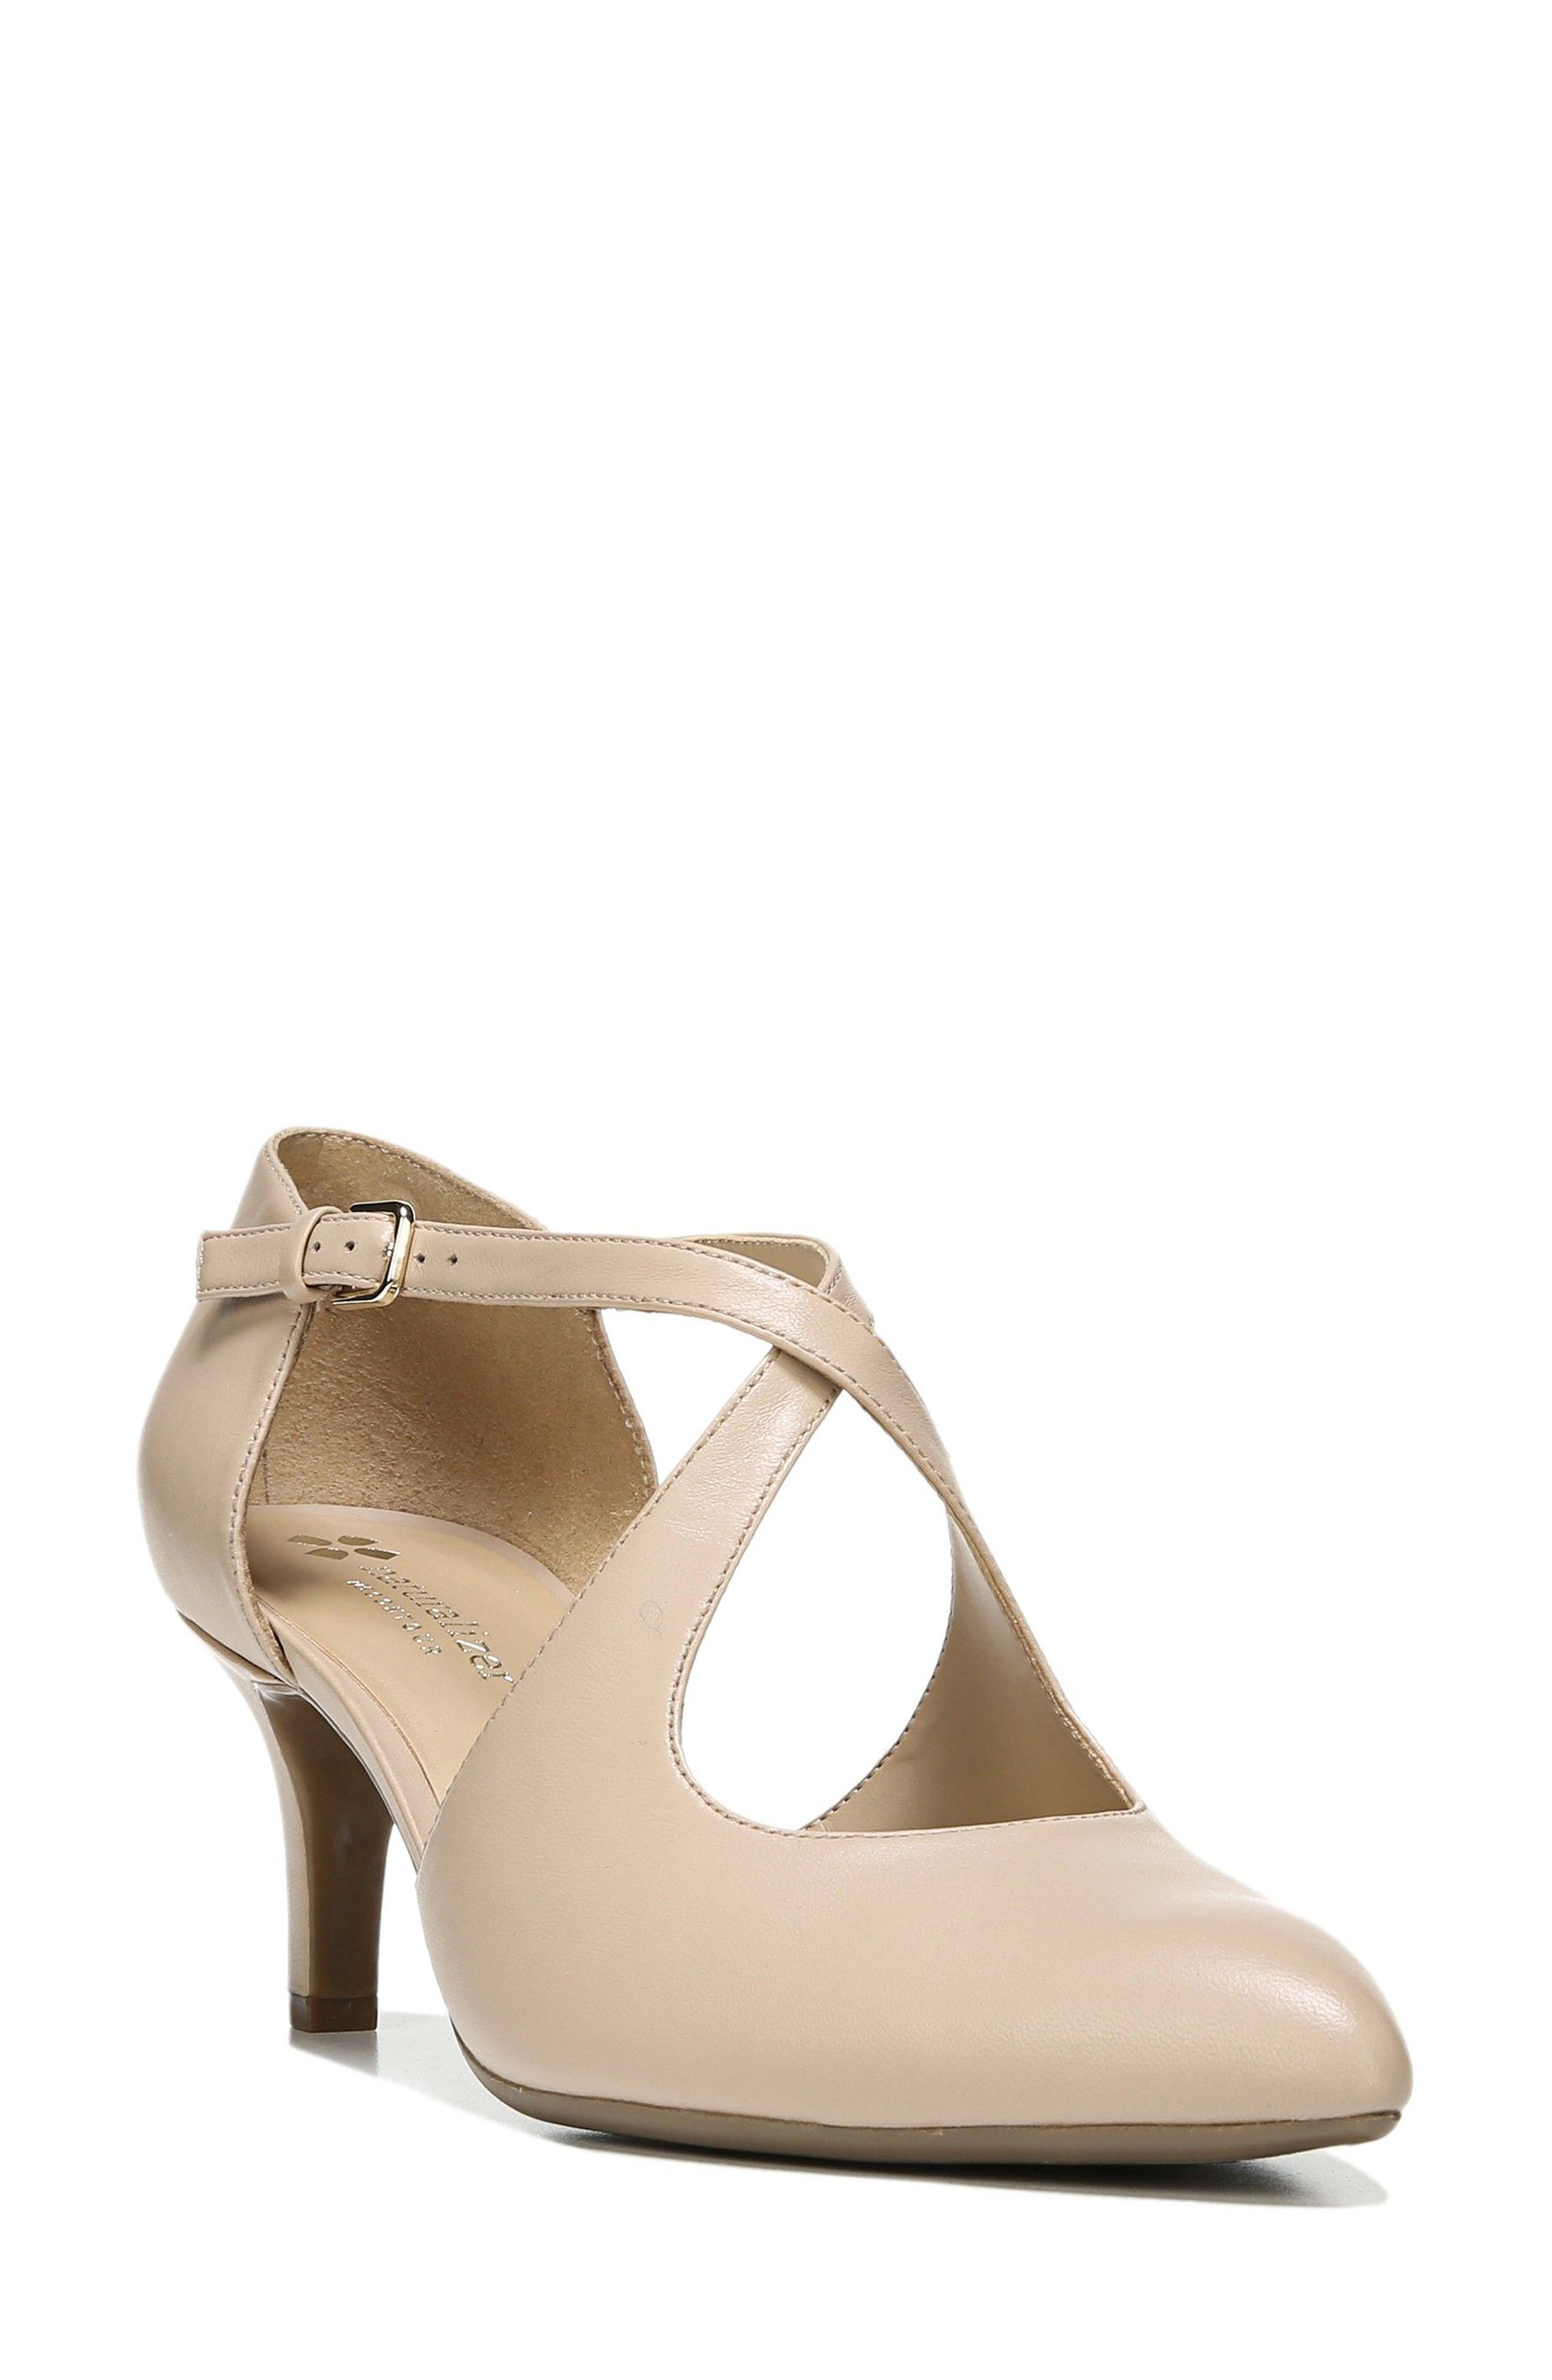 NATURALIZER, Okira Crisscross Pump, Main thumbnail 1, color, TAUPE LEATHER